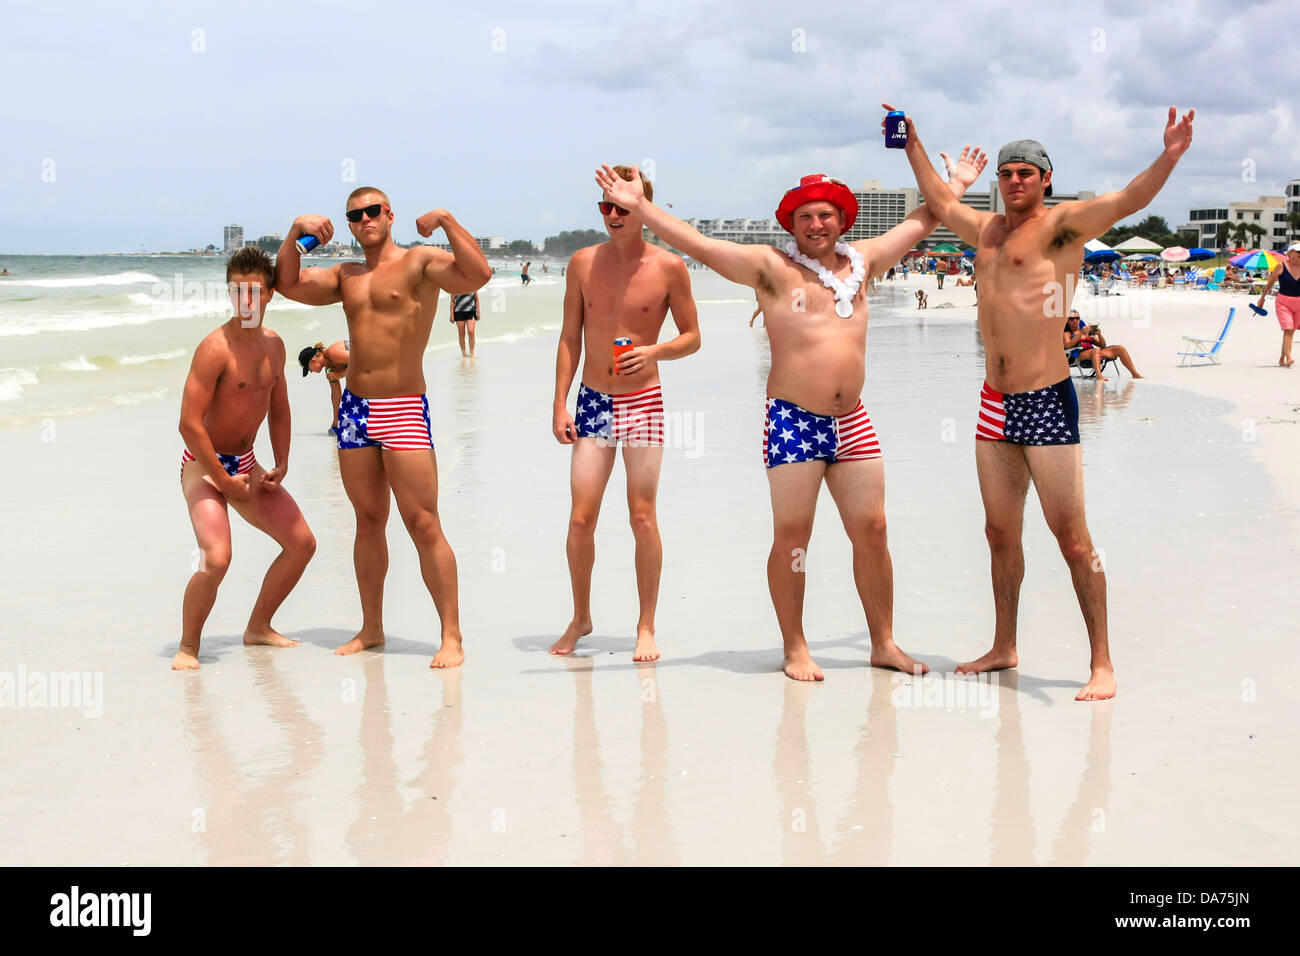 College guys wear patriotic Stars and Stripes swimwear on July 4th in Florida - Stock Image